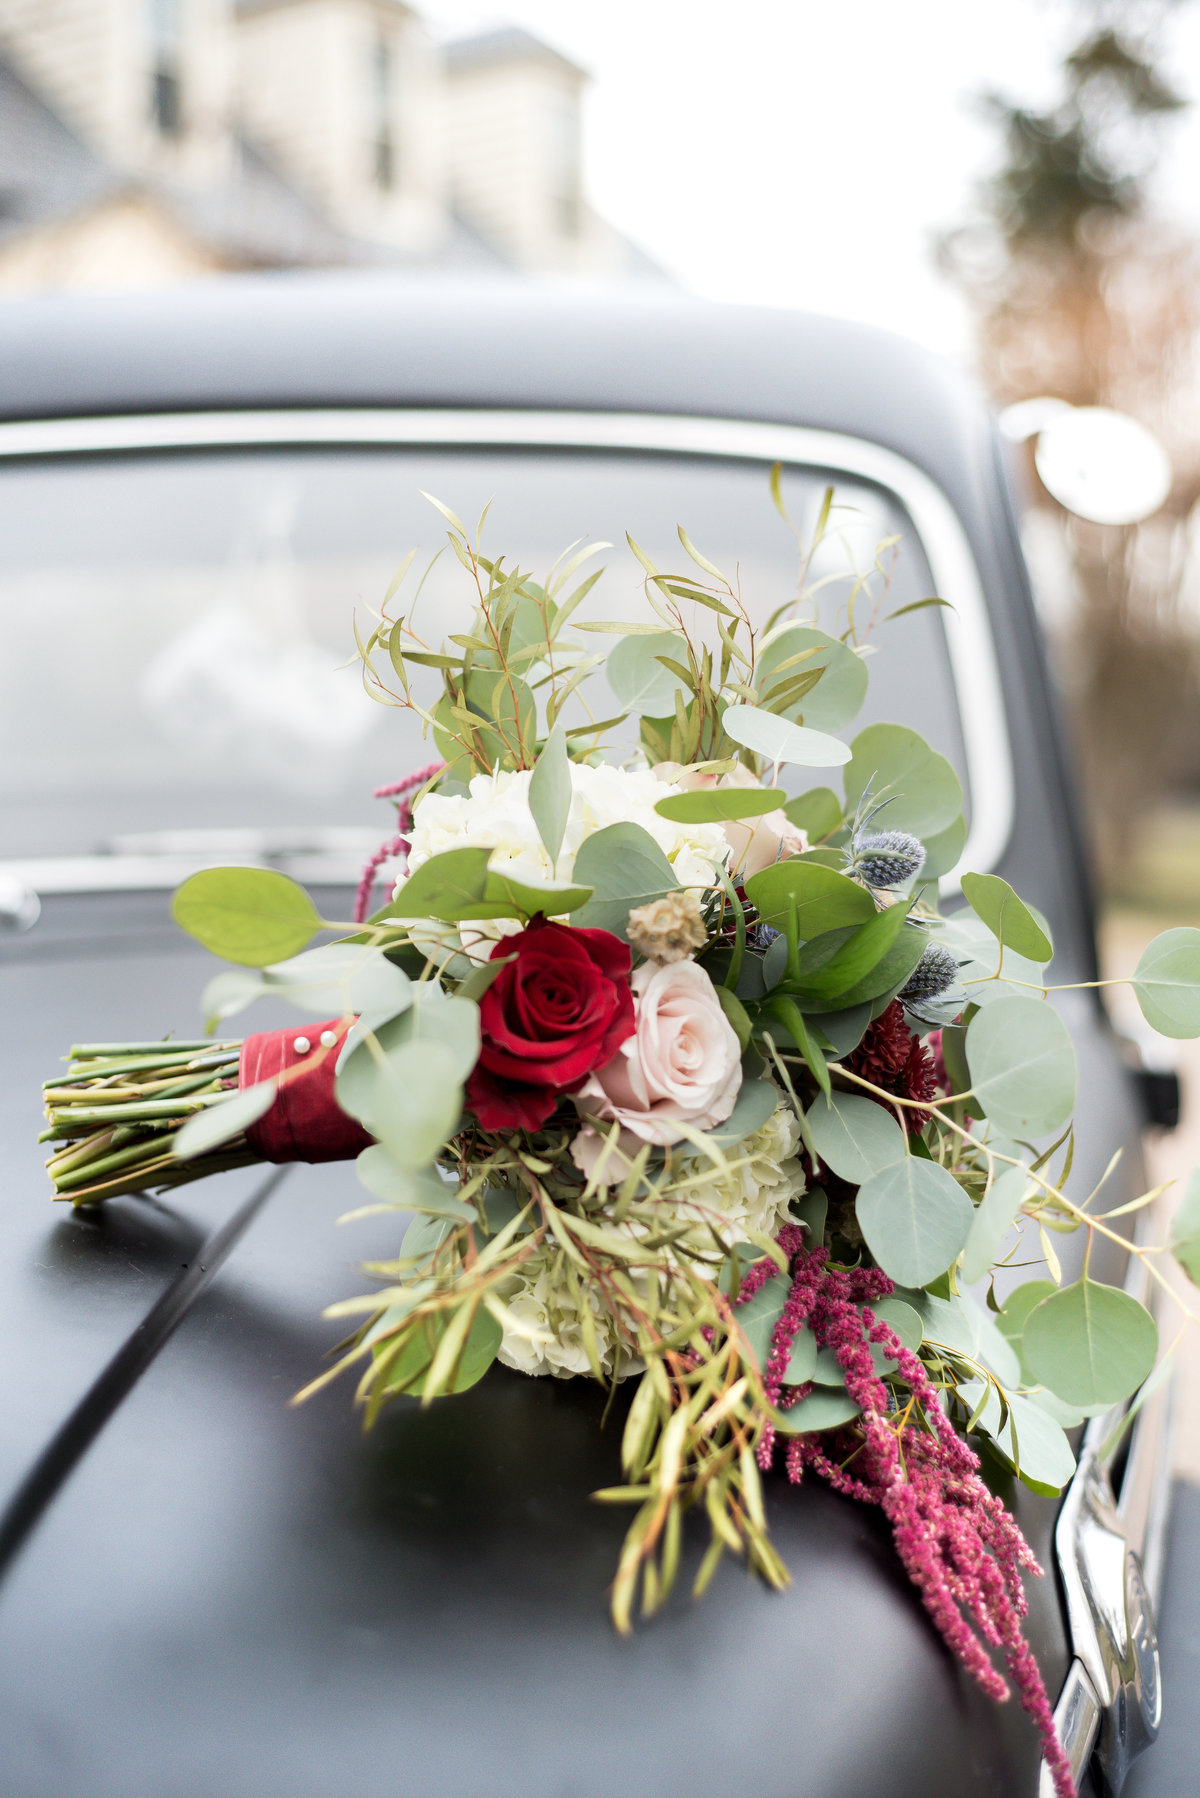 Vintage truck and wedding bouquet at The Manor House of Kings Charter.